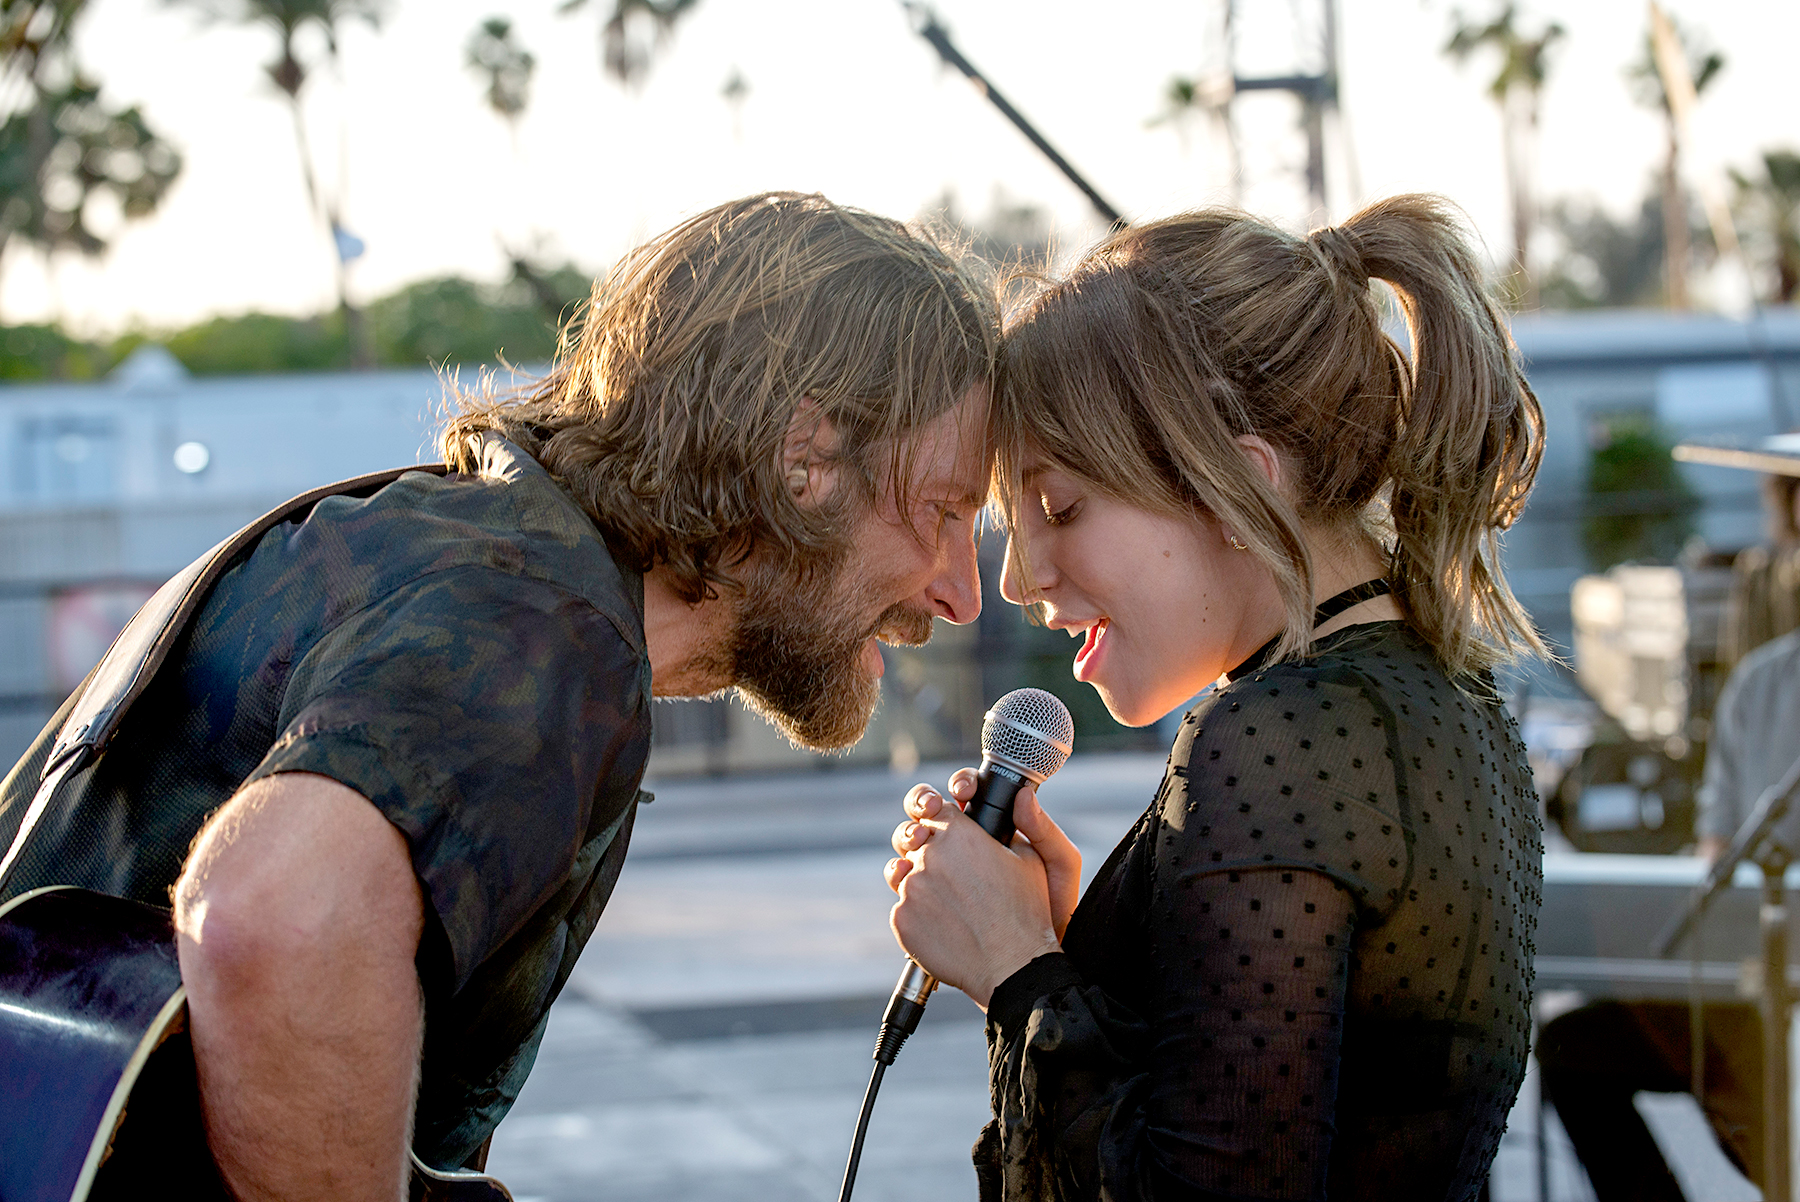 'A Star is Born' trailer starring Bradley Cooper and Lady Gaga